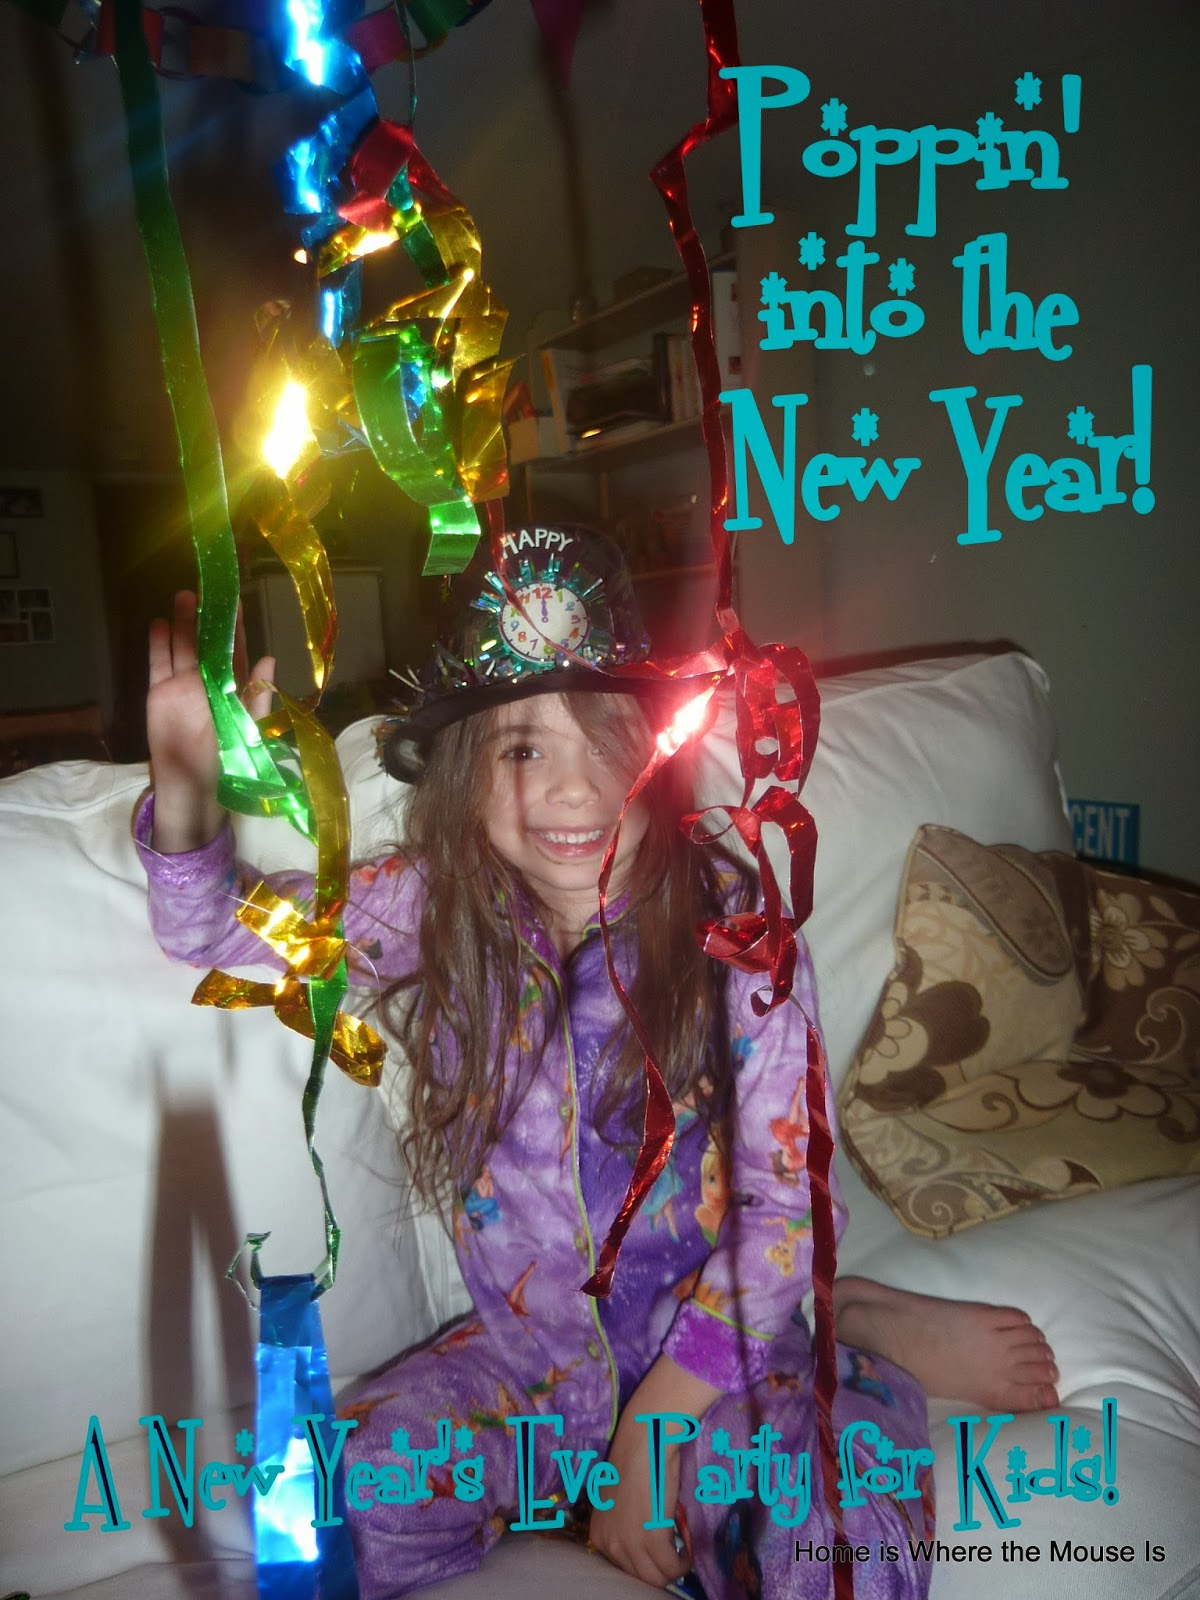 Poppin\' into the New Year | A New Year\'s Eve Party for Kids